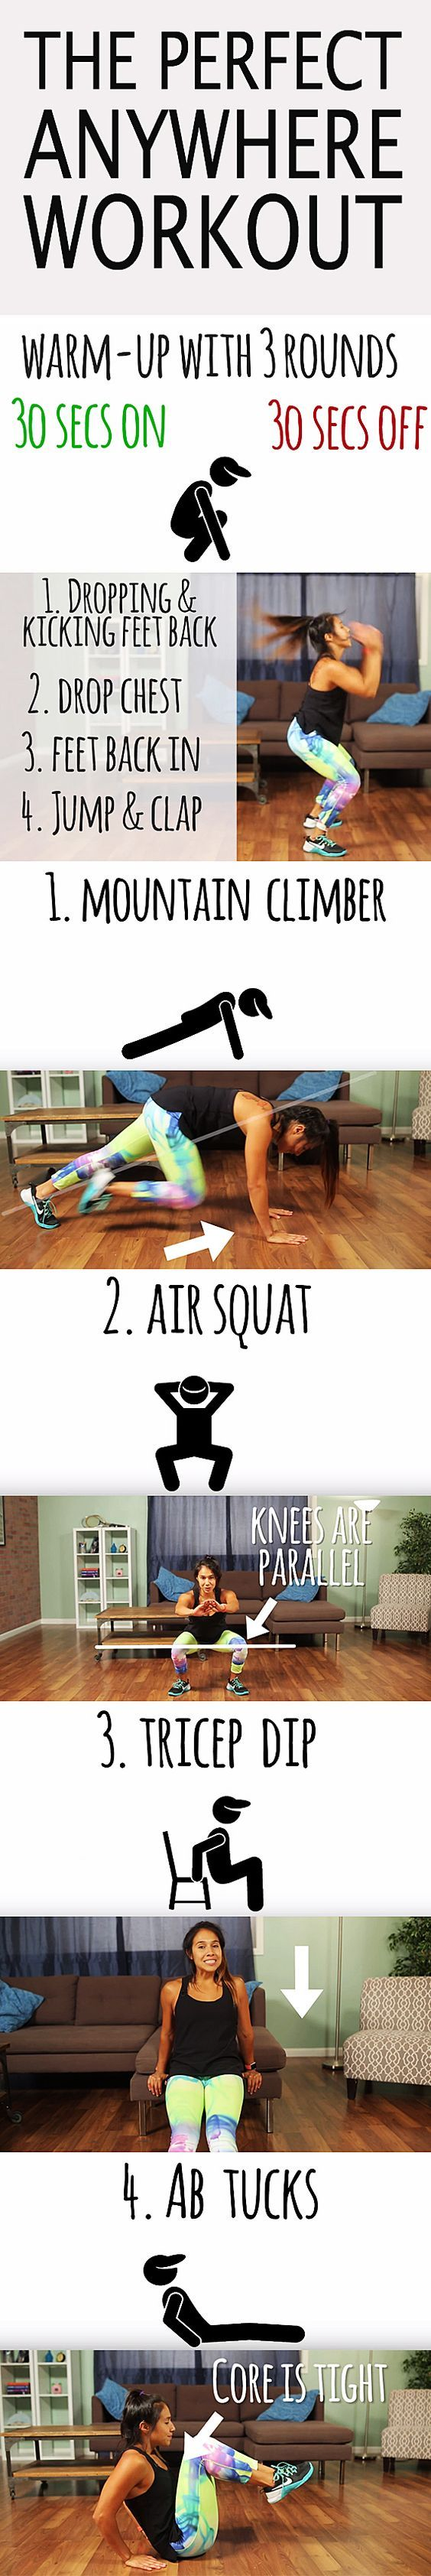 The perfect anywhere workout. Tight on space and time? Do this anywhere, anytime. Start with the warm up and then do 4 rounds with 15 reps of each exercise.